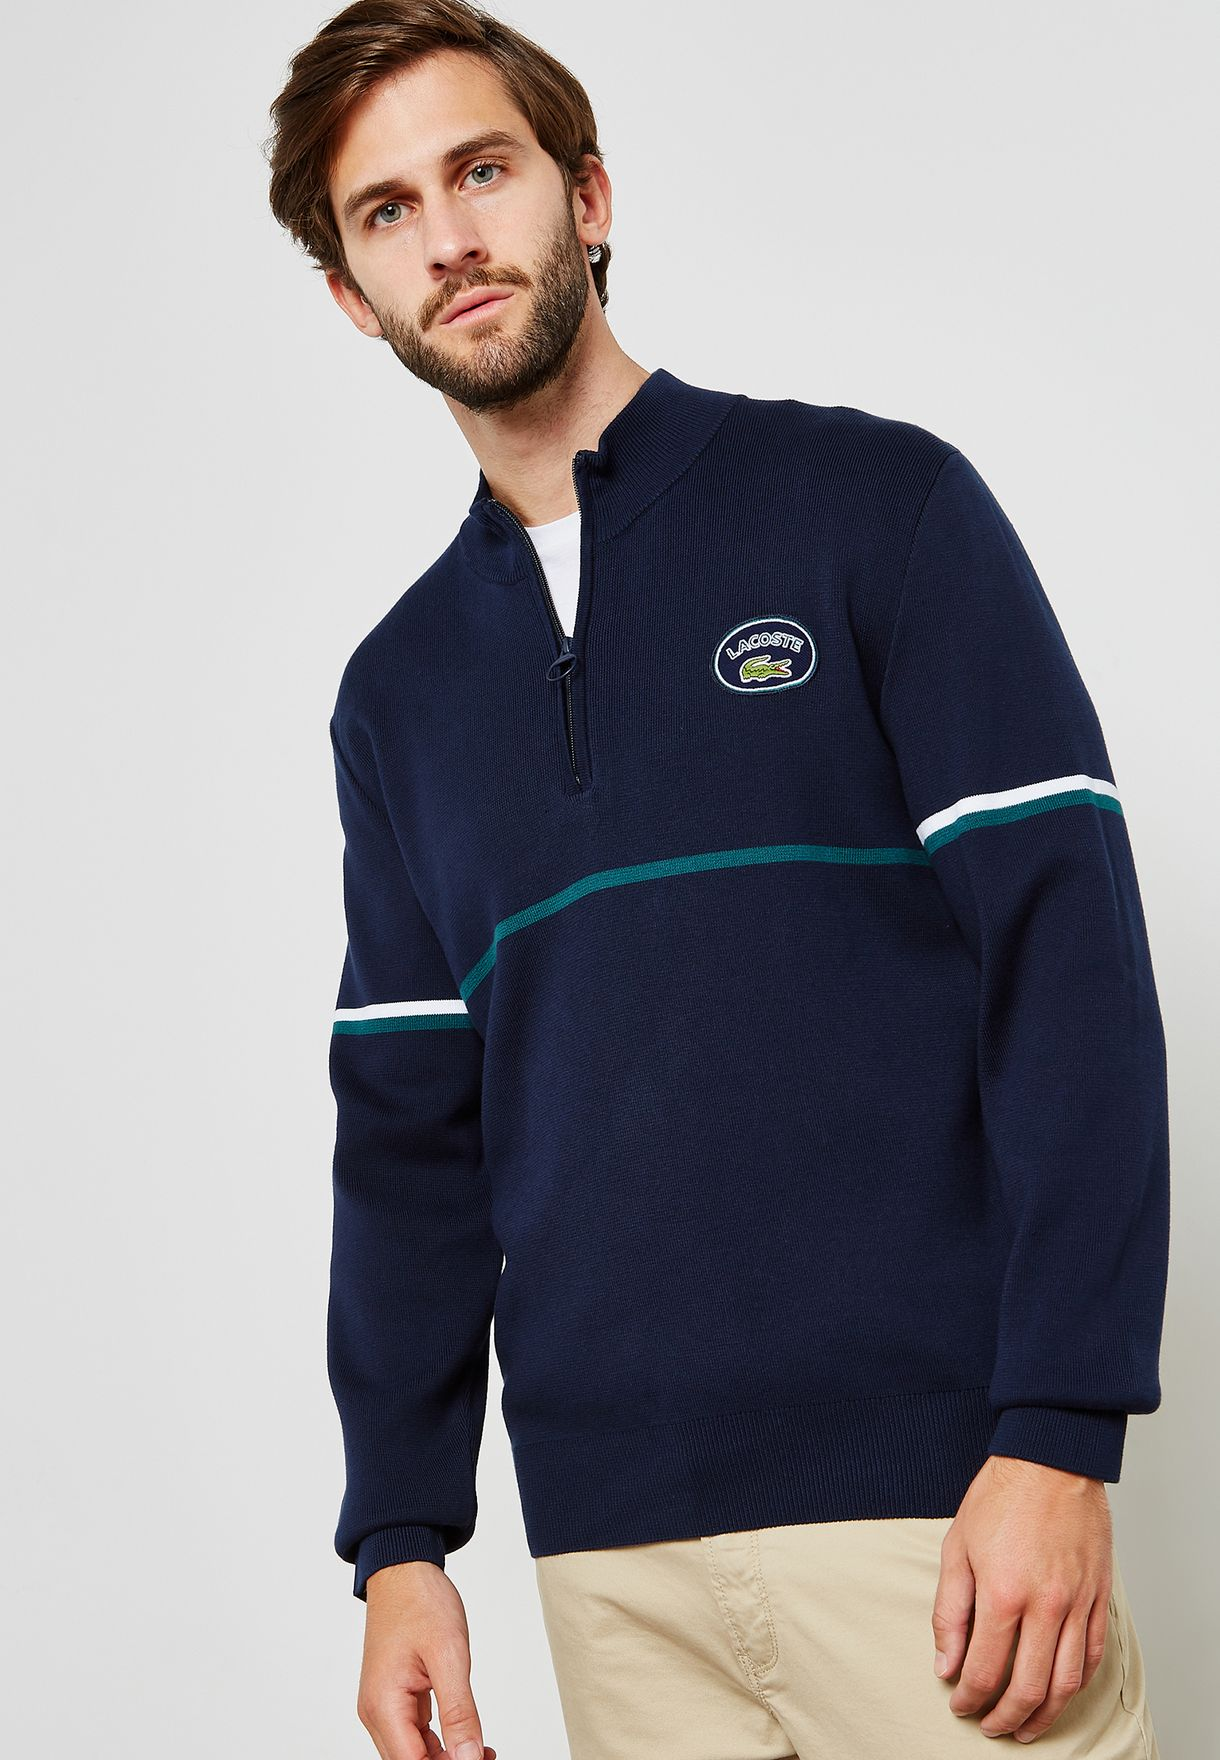 1/4 Zip Stand Up Collar Sweater